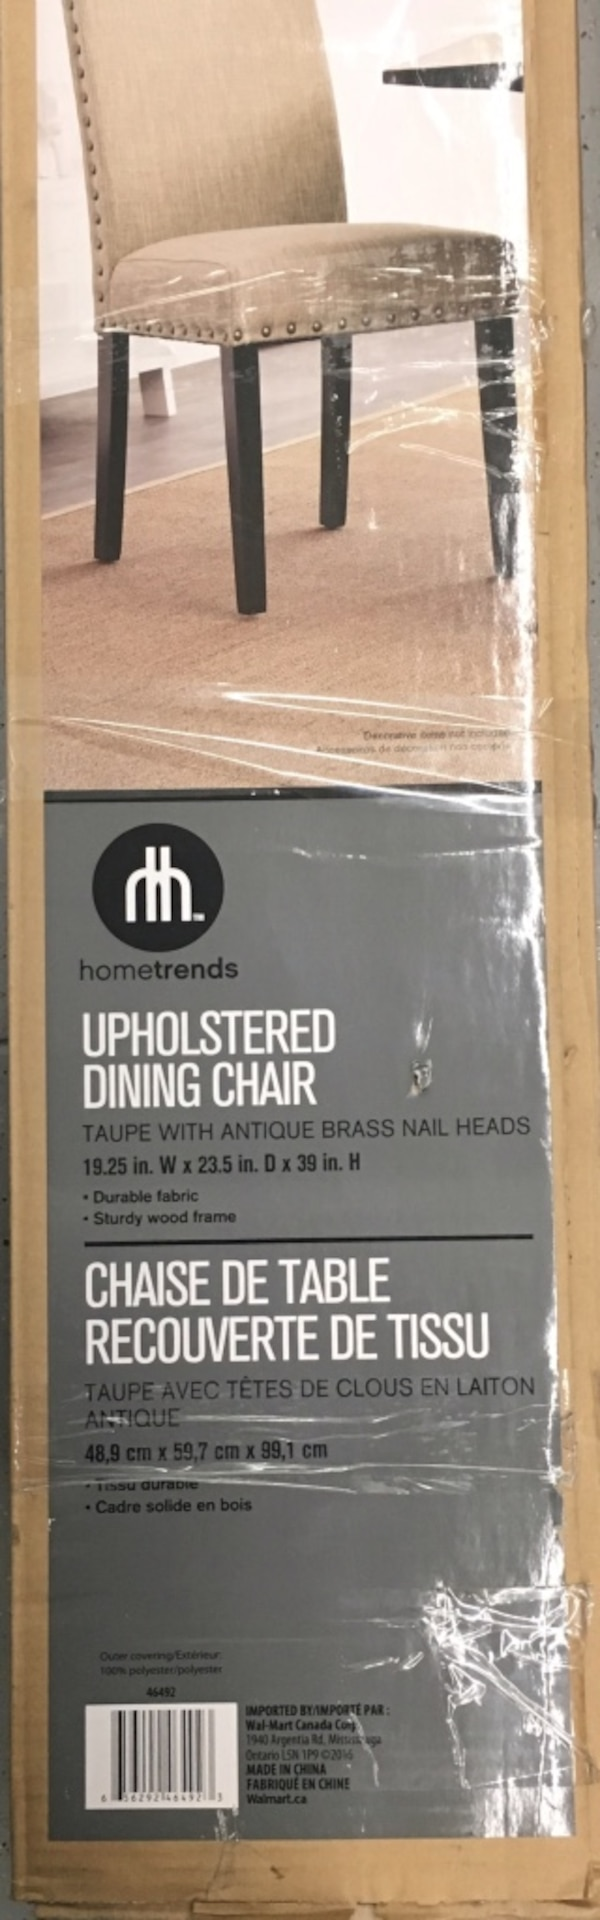 (1) New Mainstays Upholstered Dining Chair- Taupe fd985bdb-6c45-414e-8d3d-7a25c997a0ae